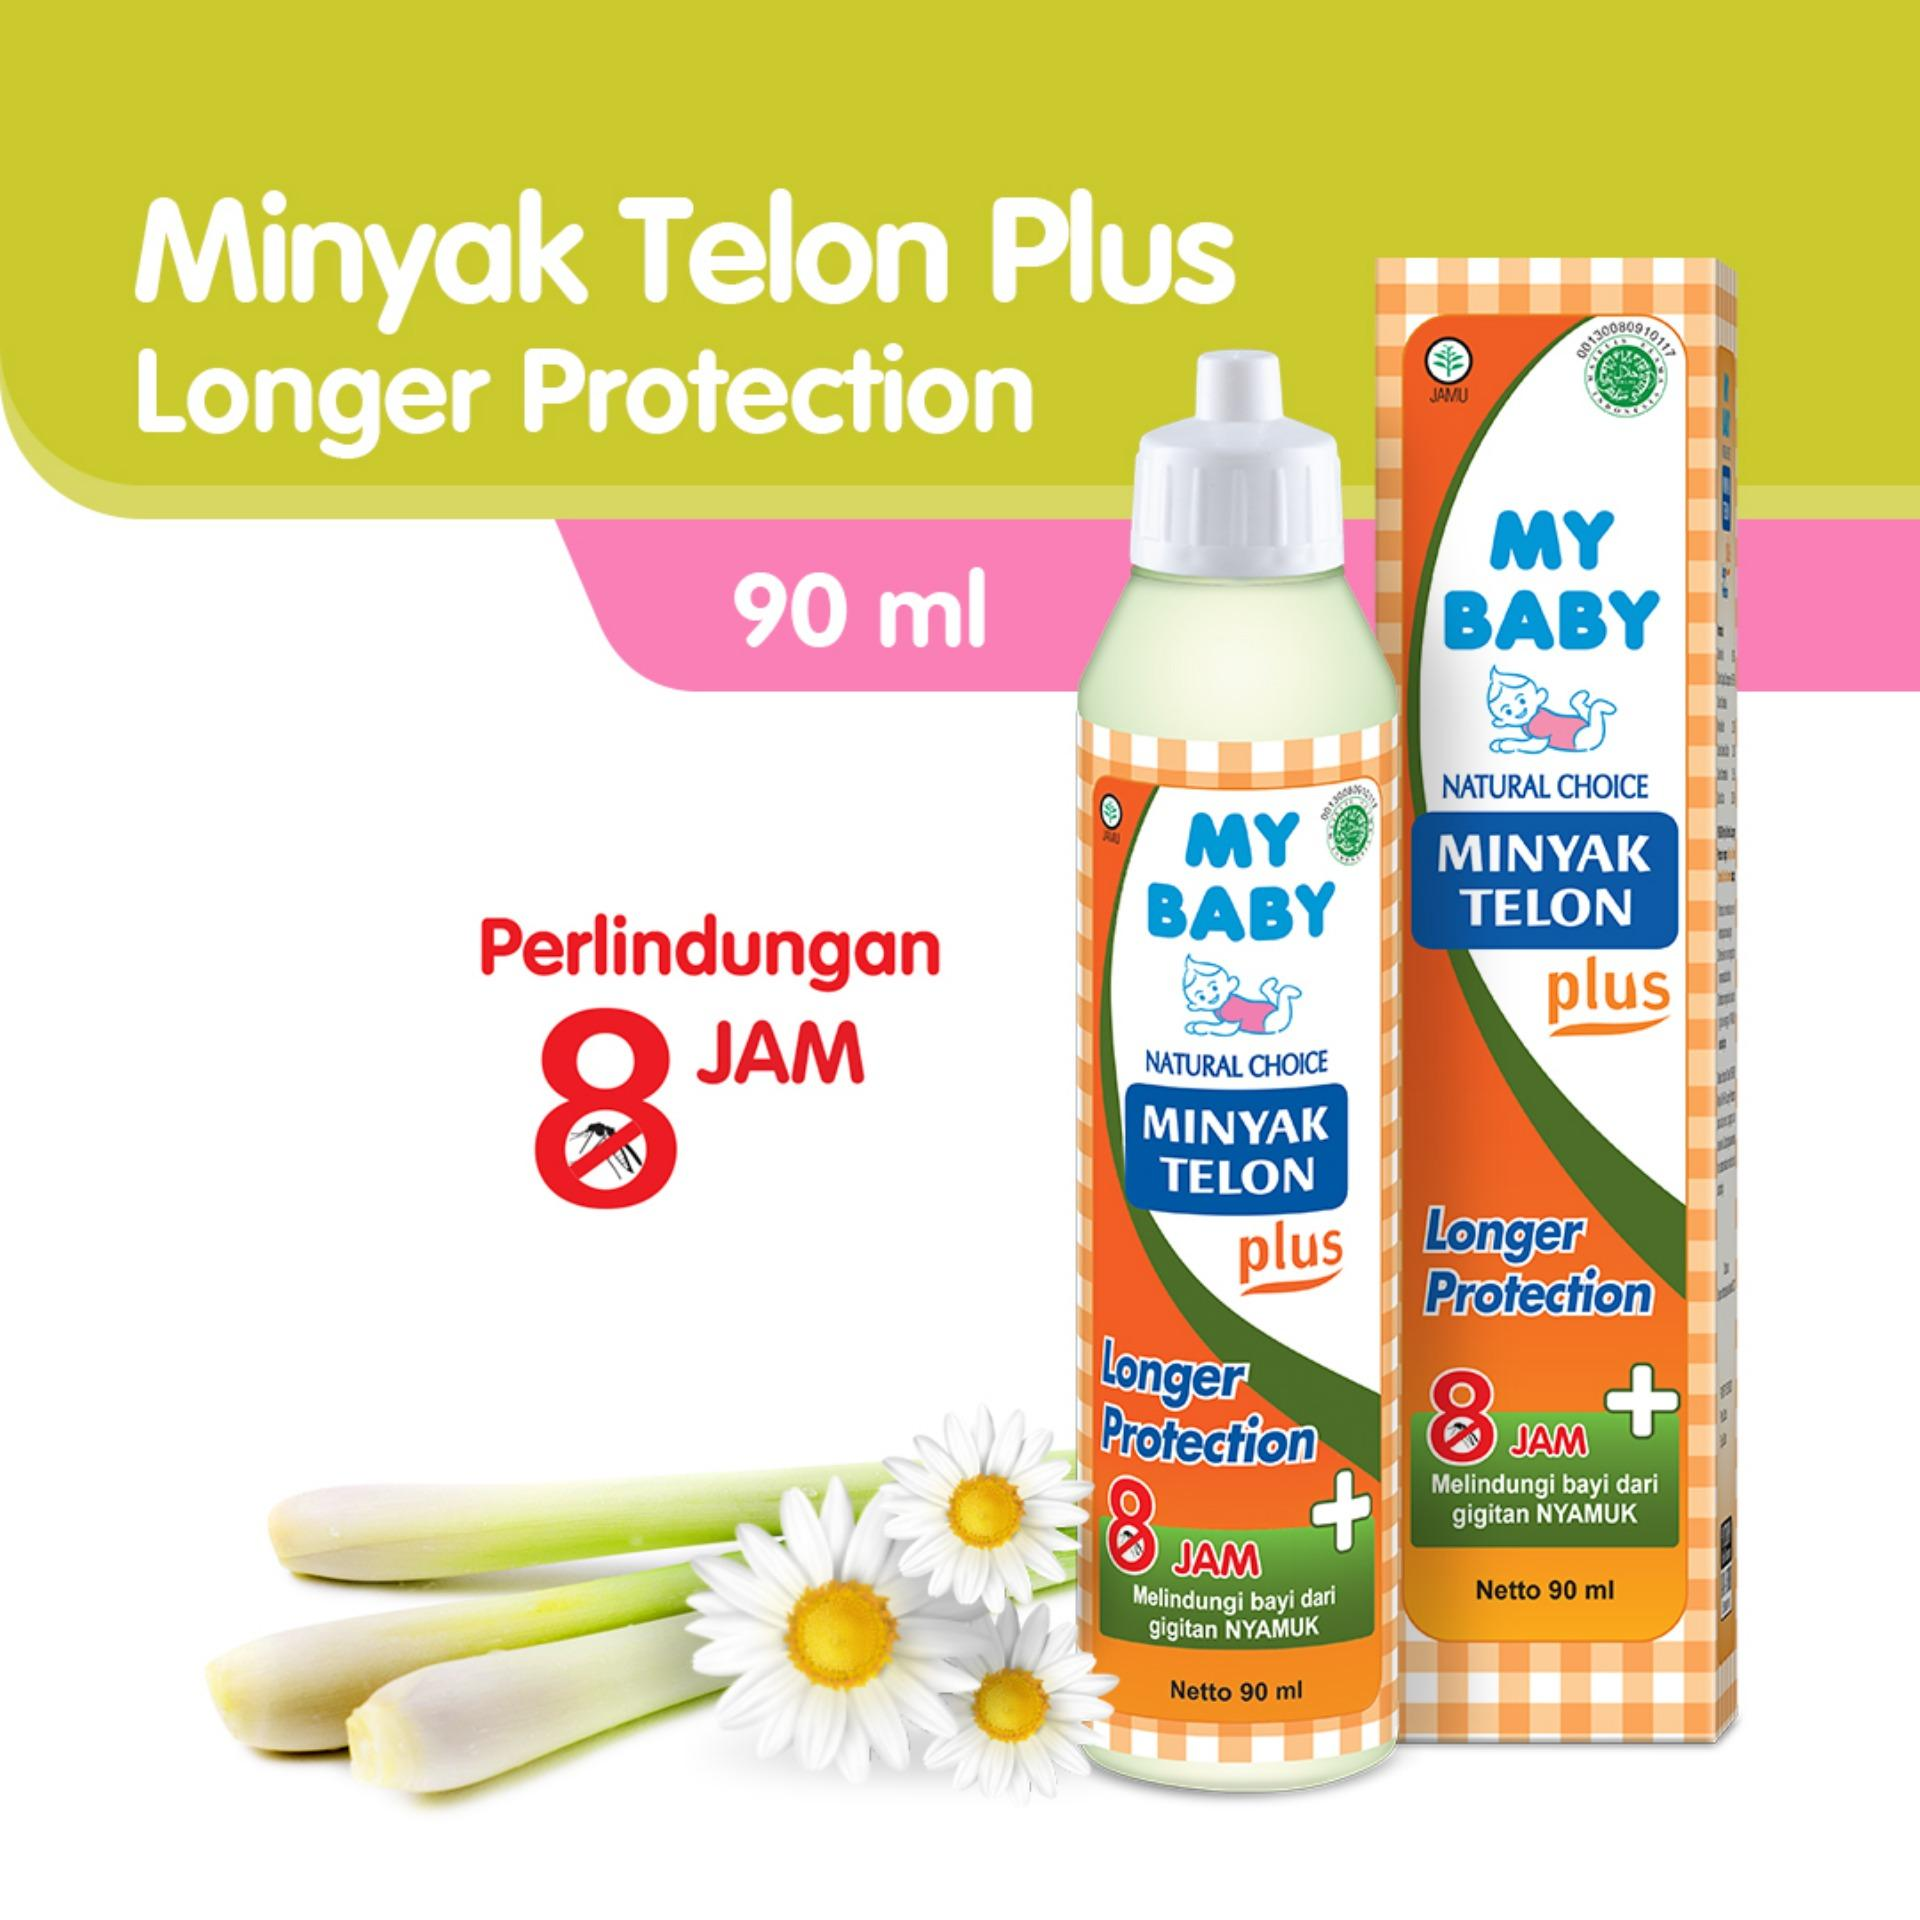 Pure Kids Aise Belly Obat Kembung Dan Masuk Angin Anak Isi 60ml Purekids Review Source Free Tissue Basah My Baby Minyak Telon Plus Longer Protection 90 Ml